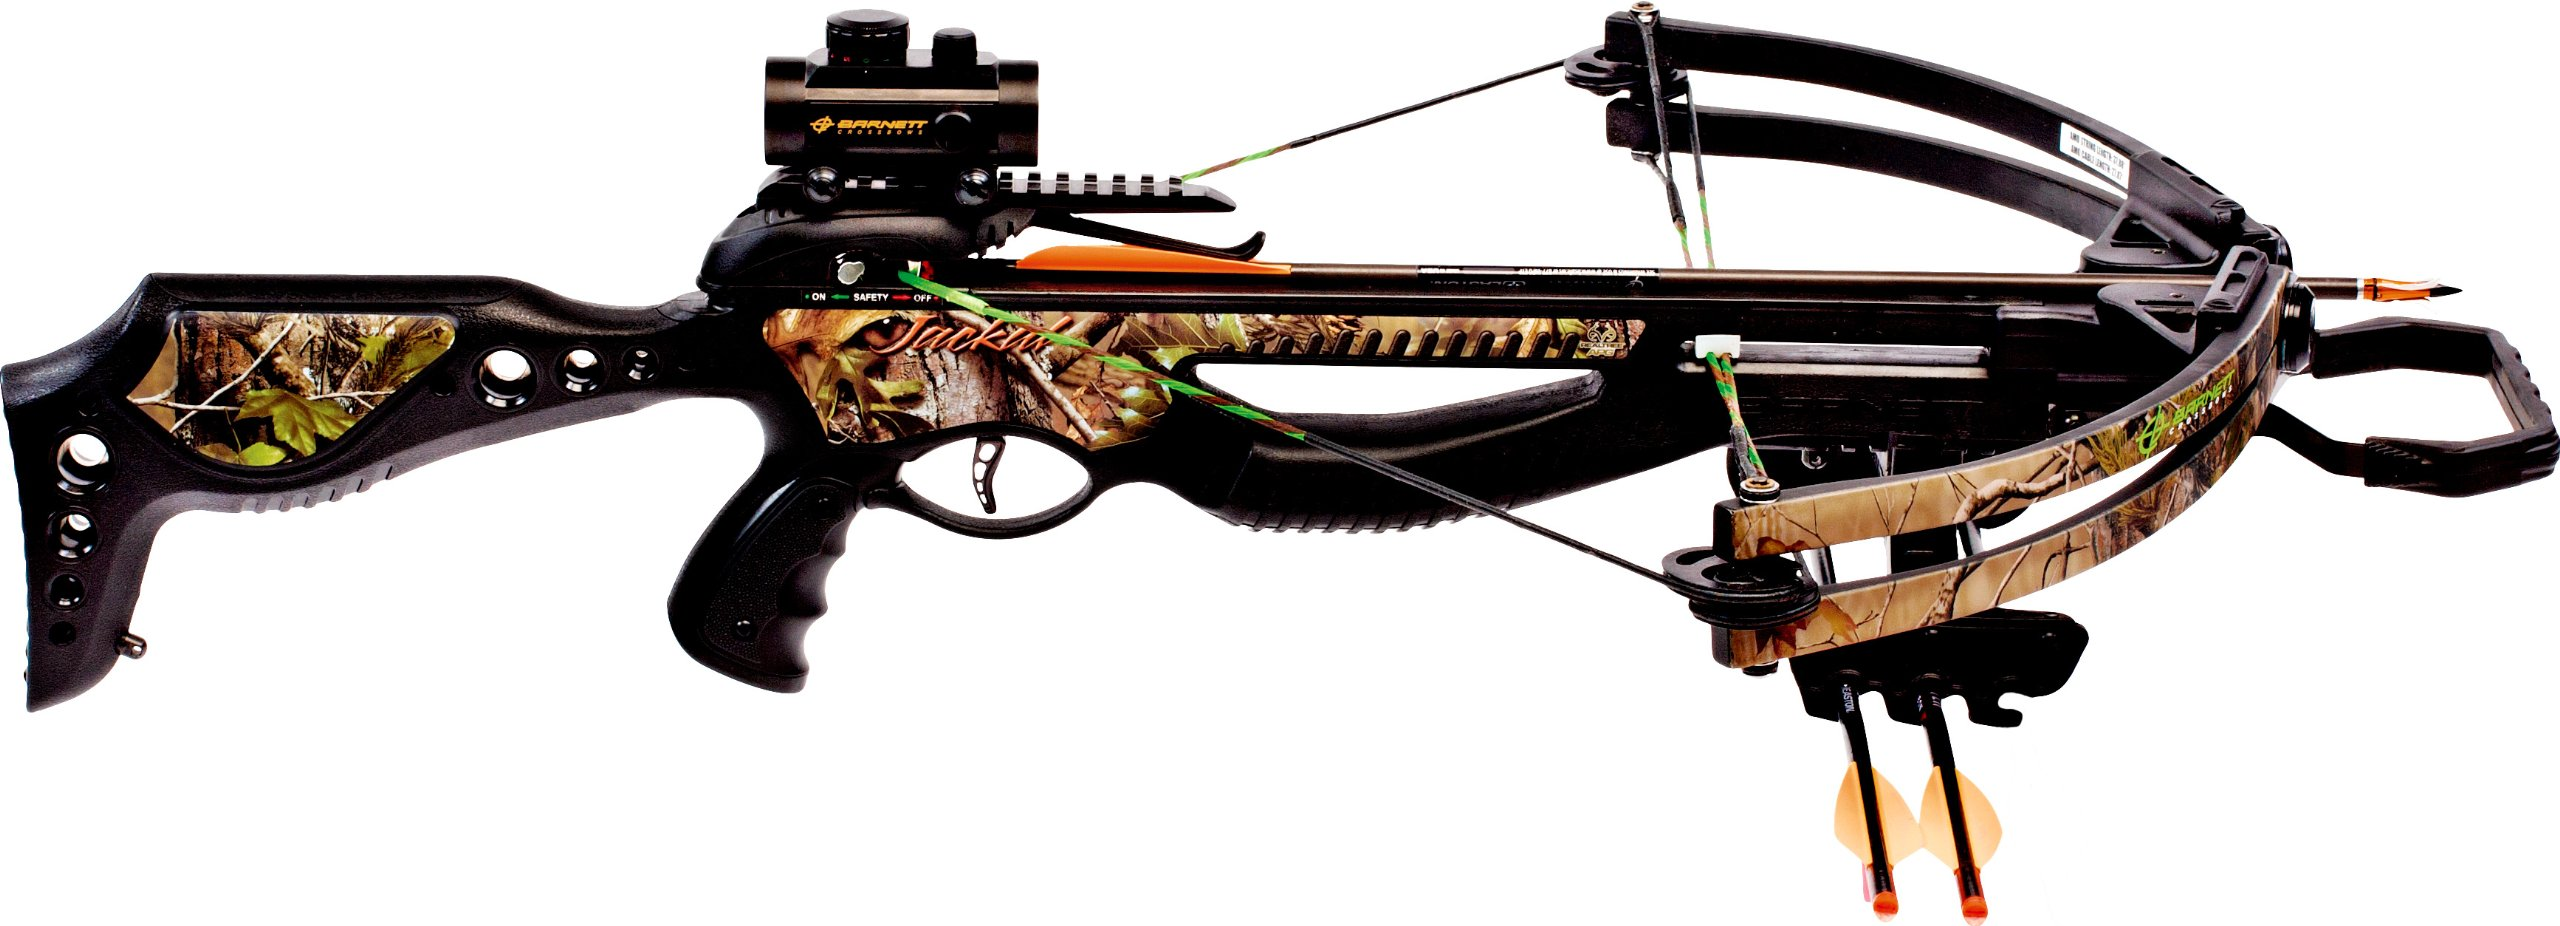 Barnett Jackal Crossbow Package (Quiver, 3 - 20-Inch Arrows and Premium Red Dot Sight) by Barnett (Image #3)